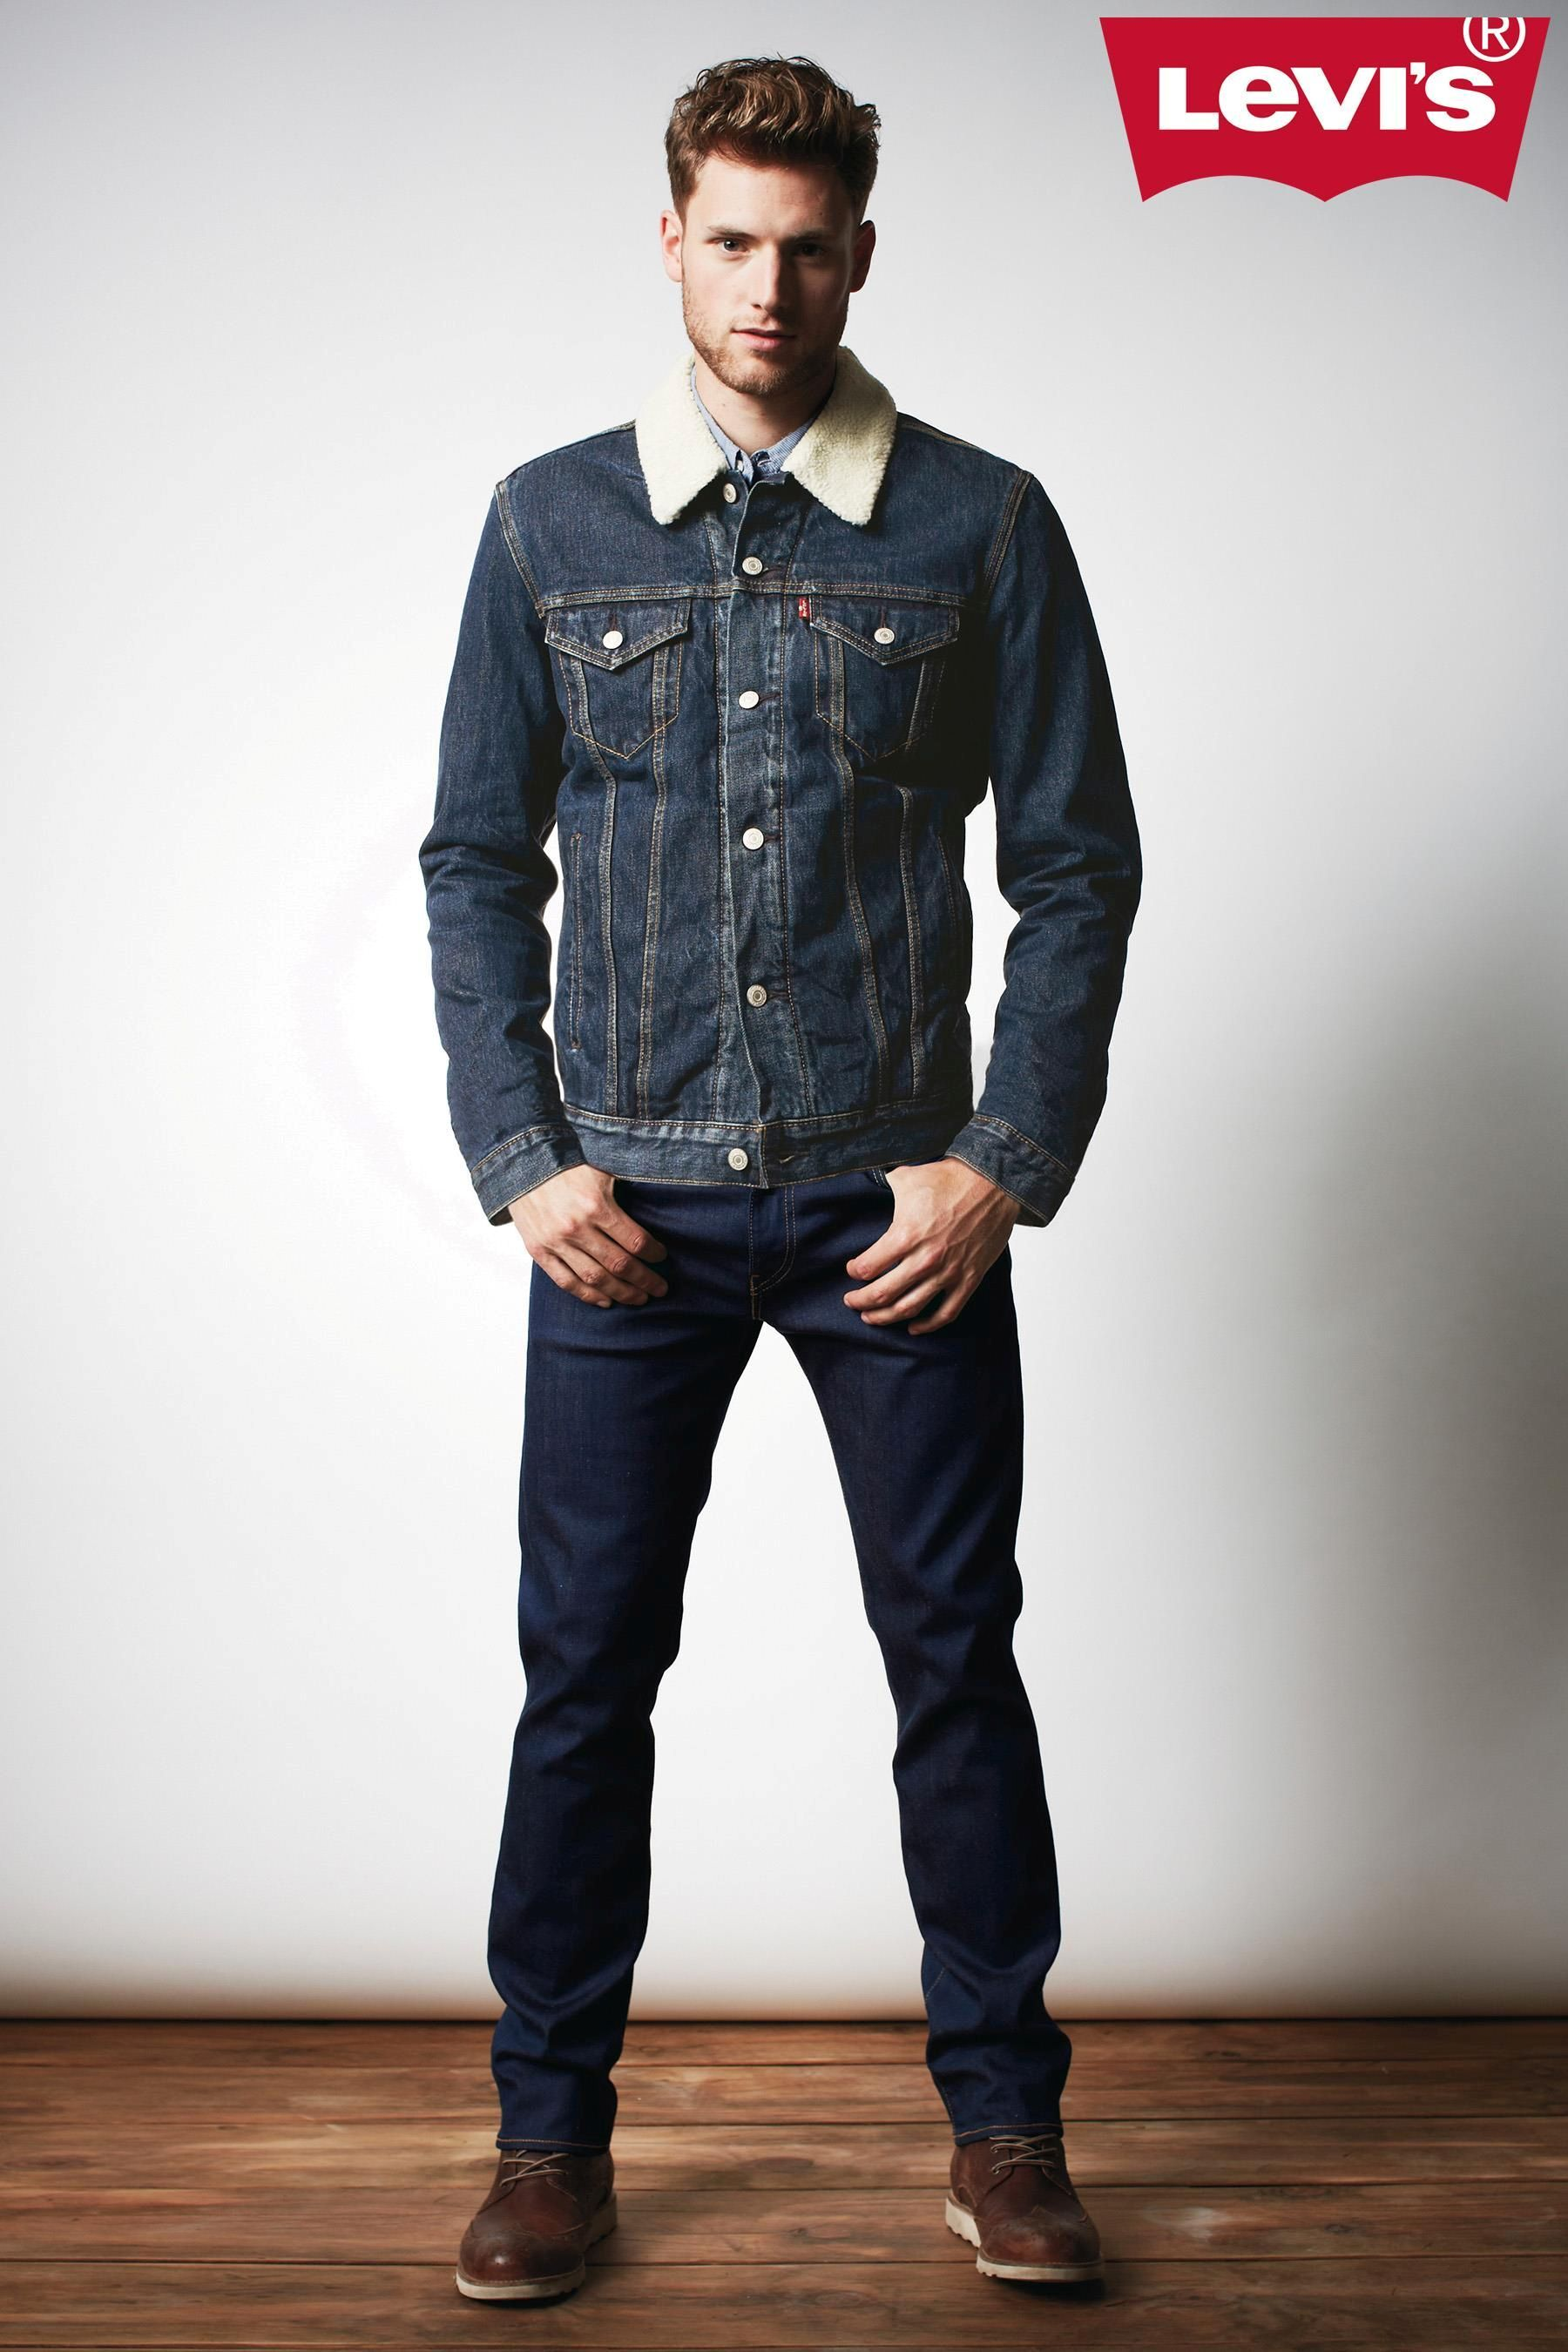 eecec500a38ca Levi s® Sherpa Trucker Denim Jacket  levisbegifted   My Style ...